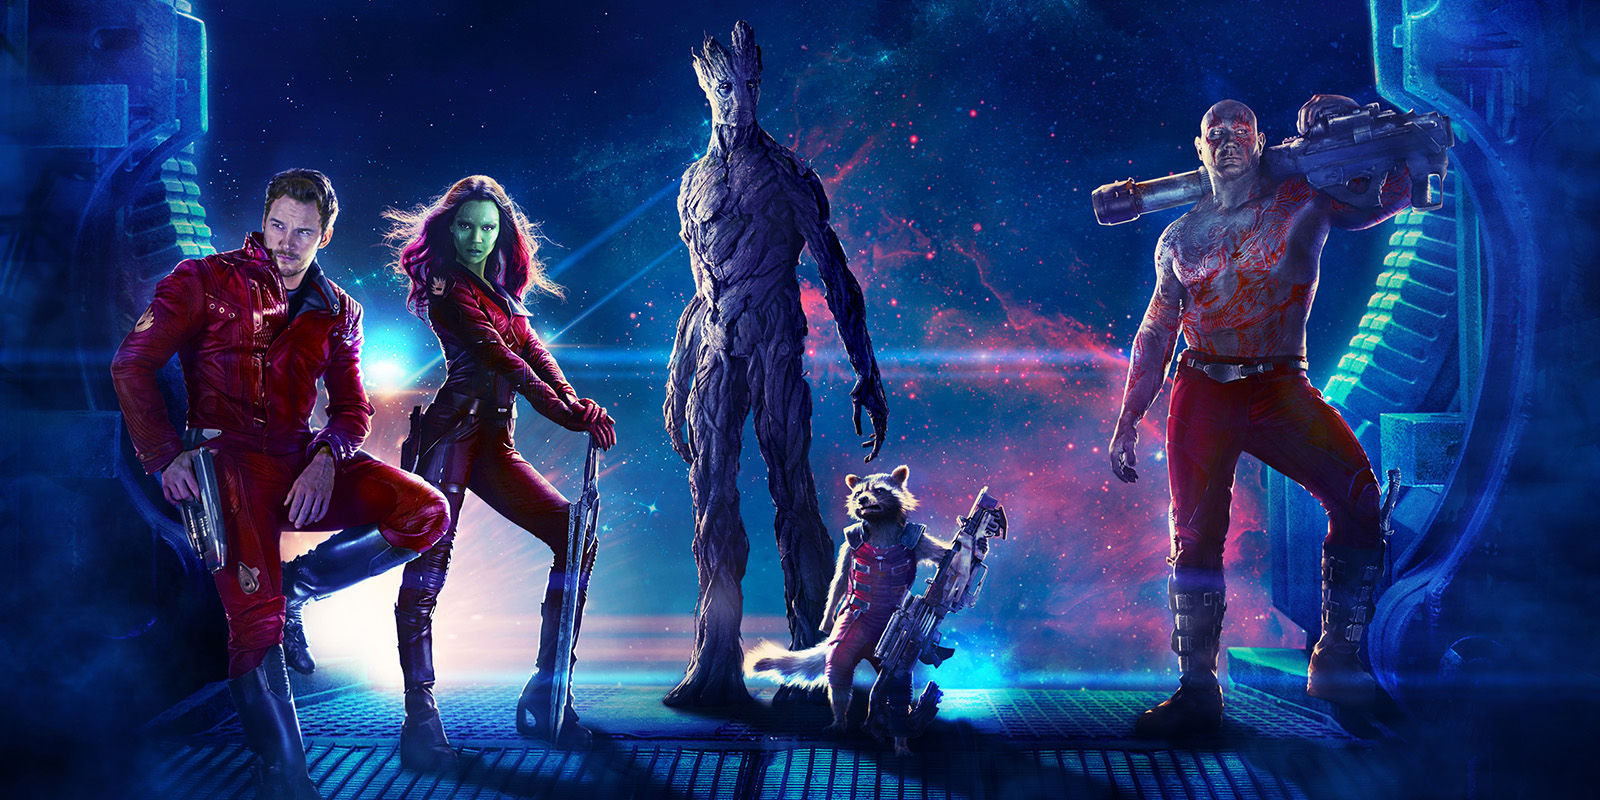 Guardians Of The Galaxy Wallpapers  WallpaperFall Guardians Of The Galaxy  Wallpaper Baltana 1600x800